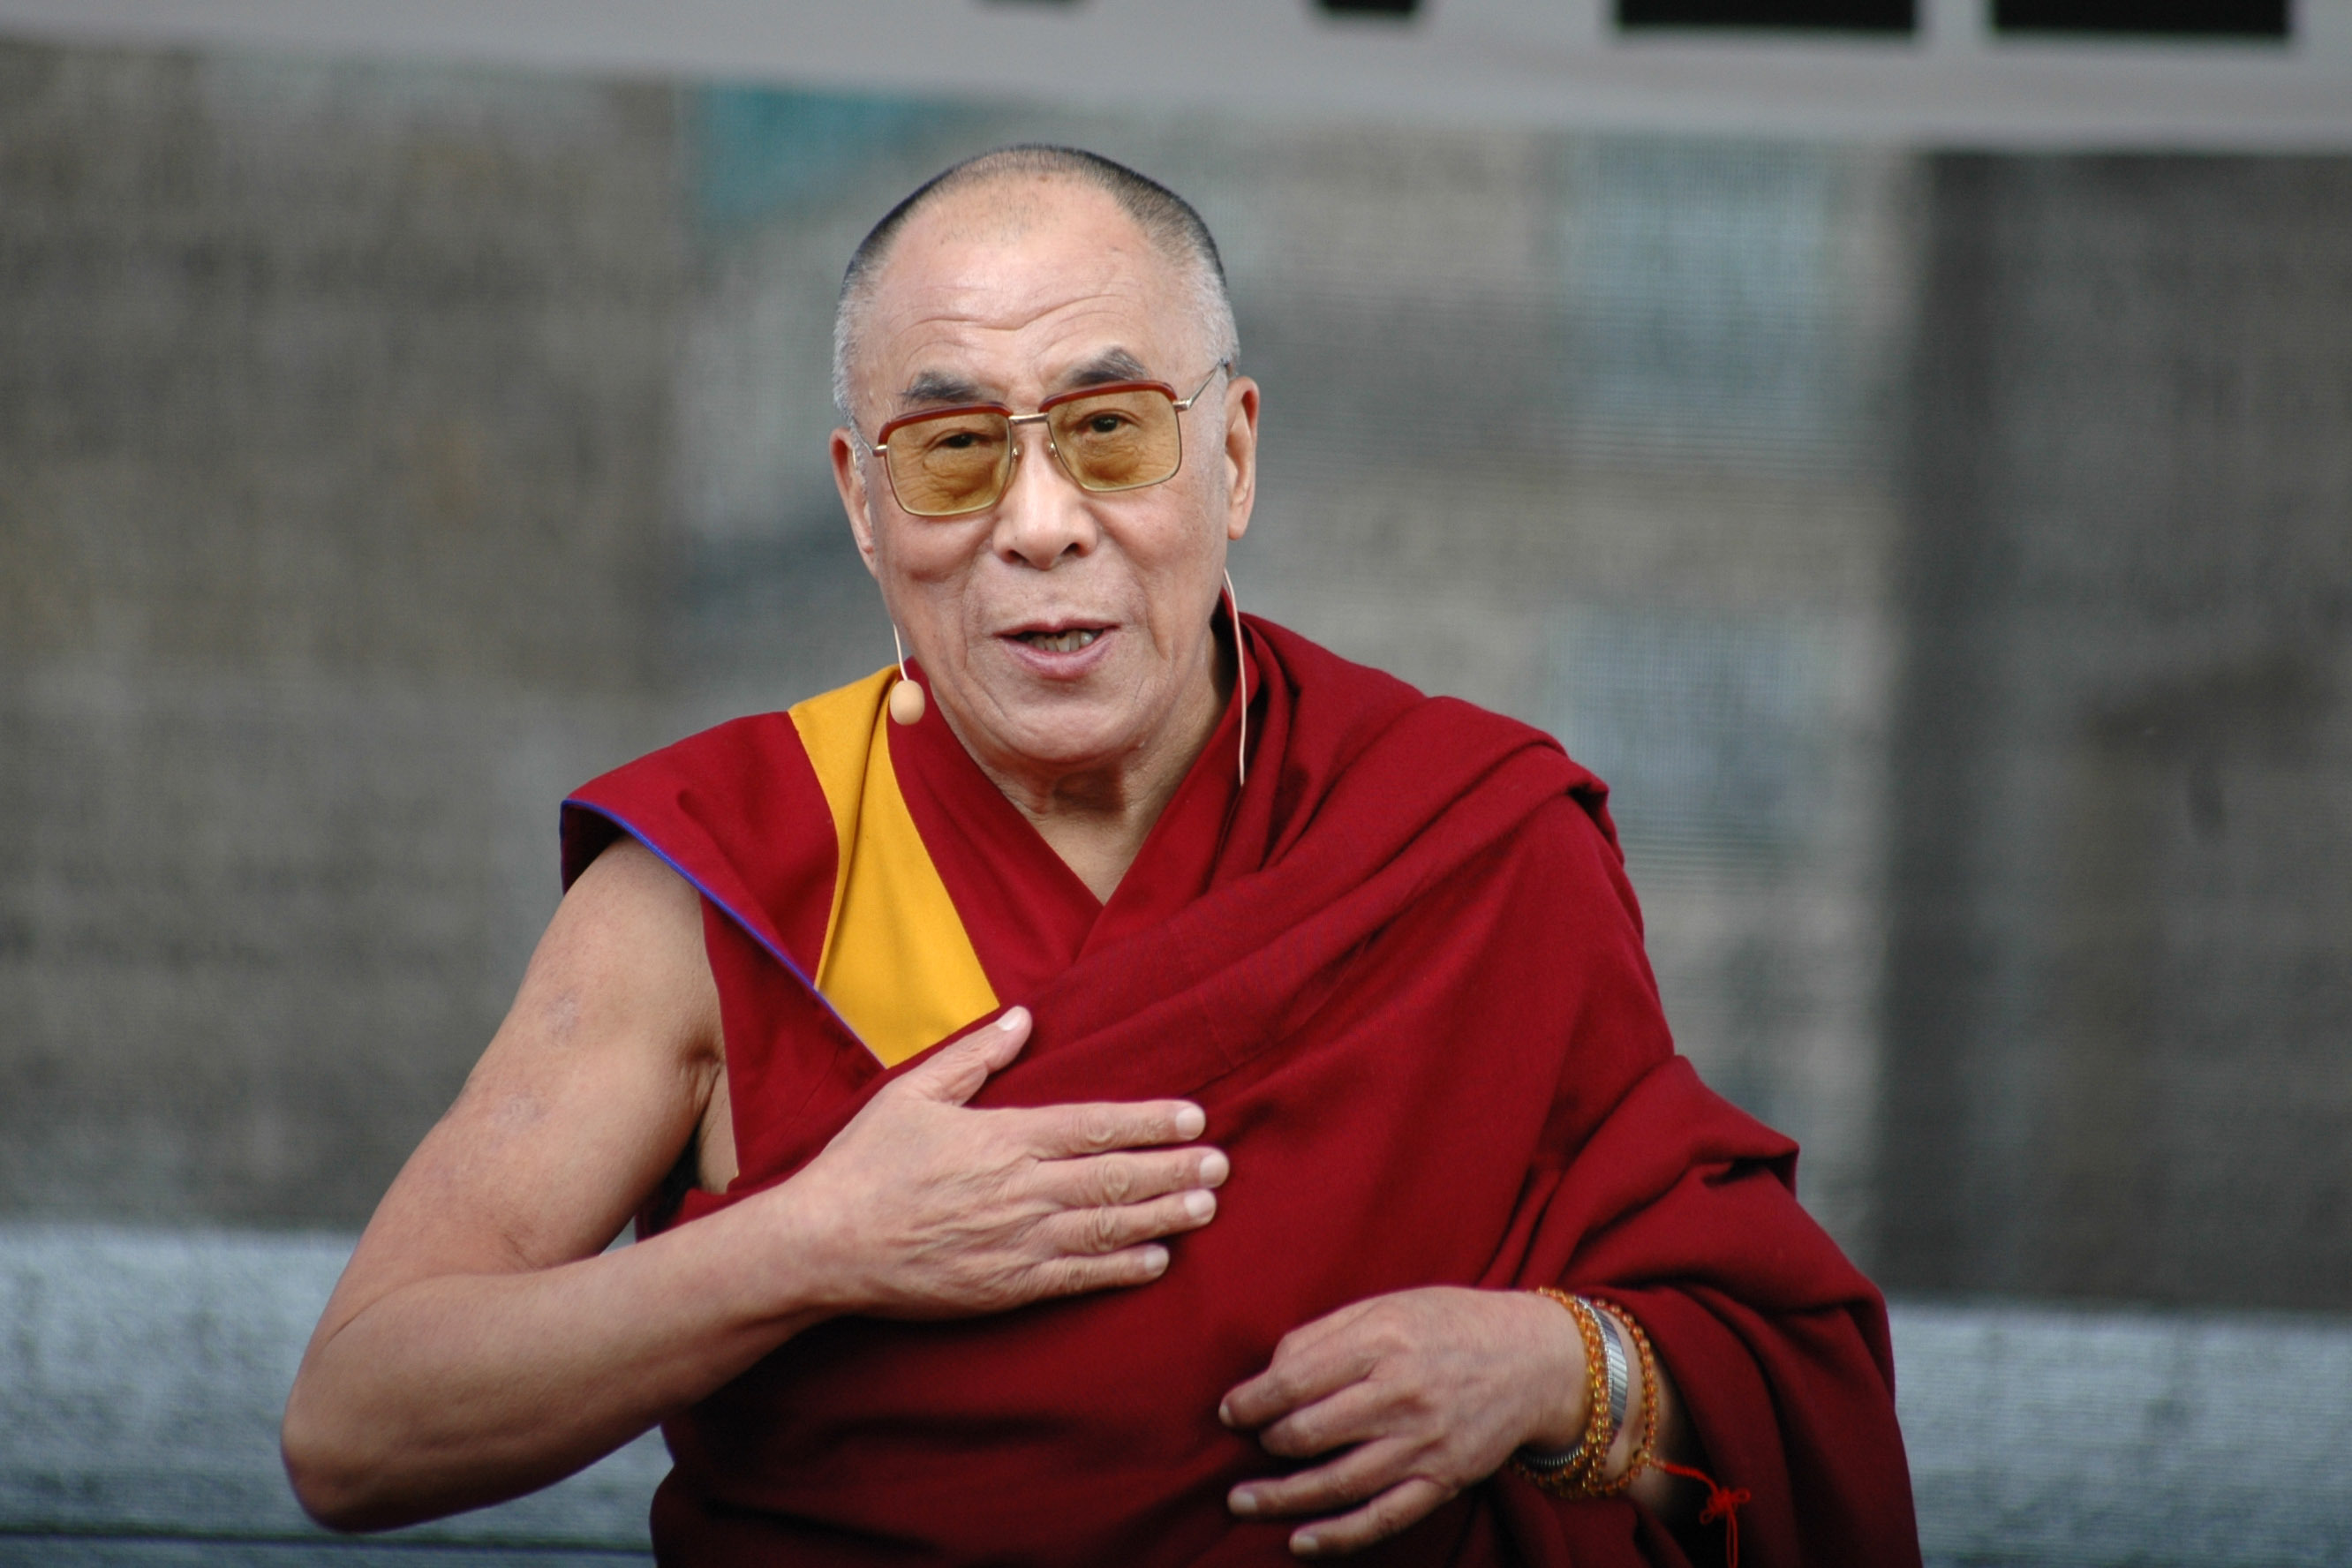 His Holiness the Dalai Lama (Photo courtesy/ 360b)